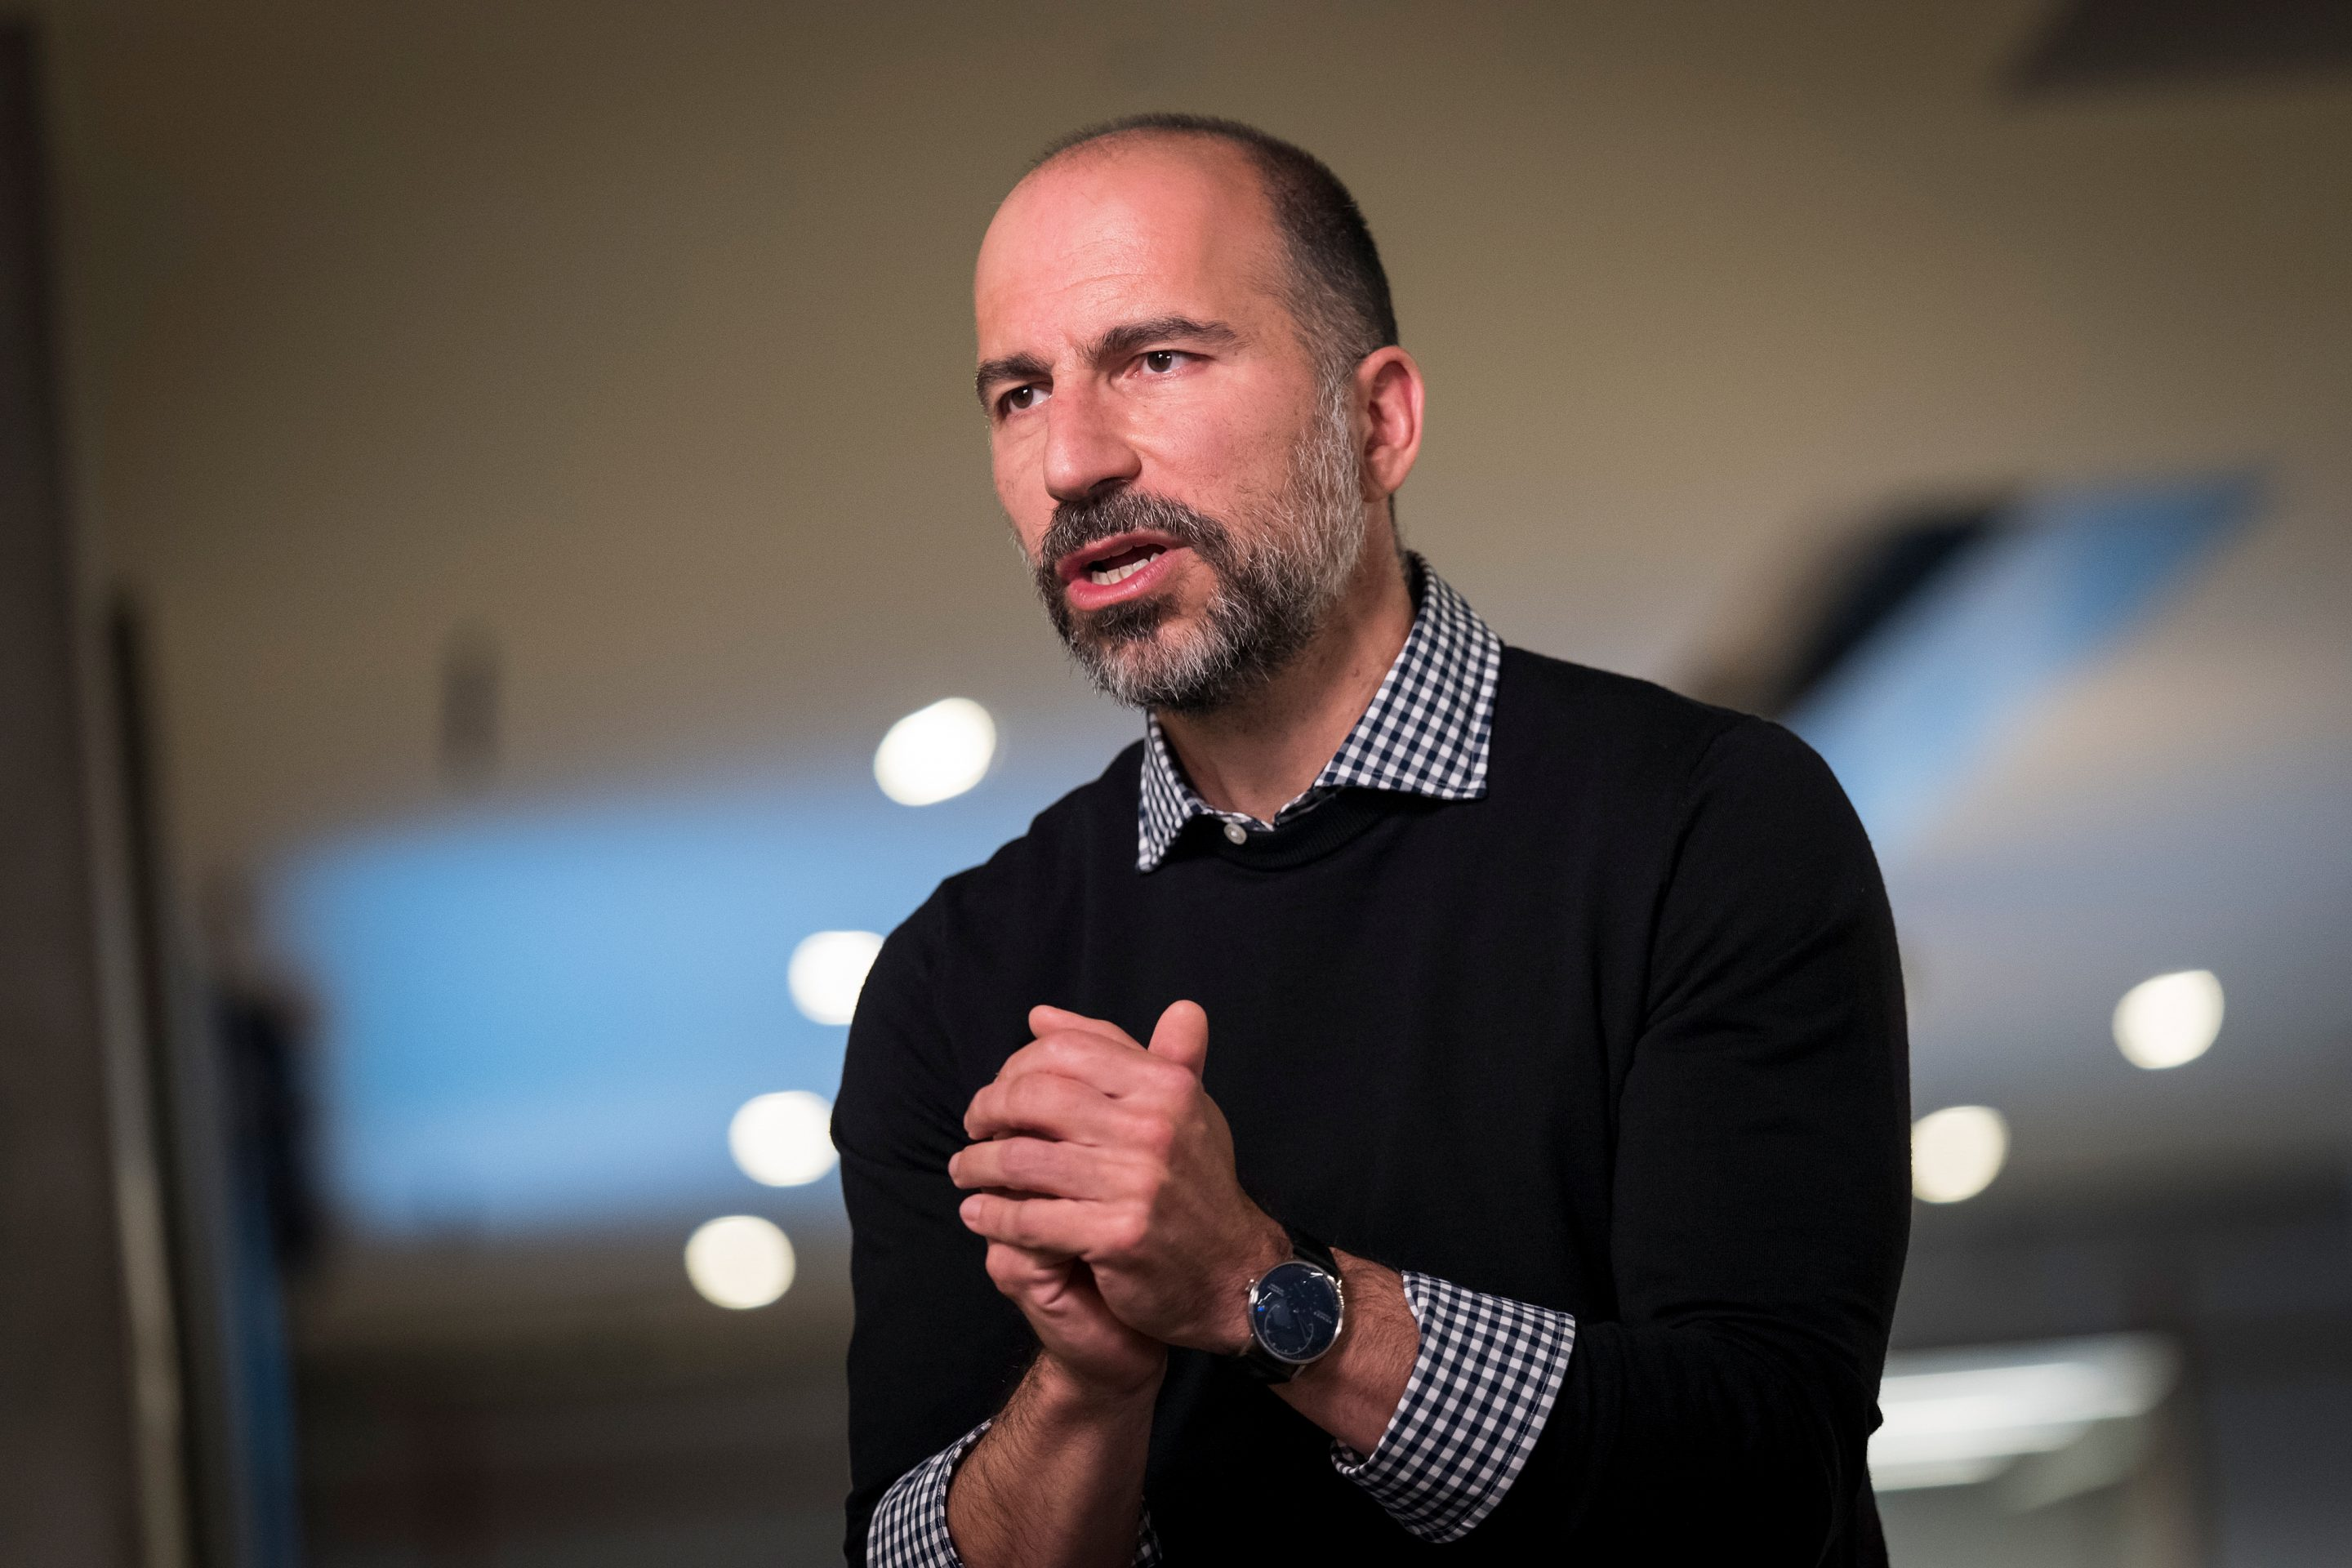 Uber Technologies Inc. CEO Dara Khosrowshahi Interview